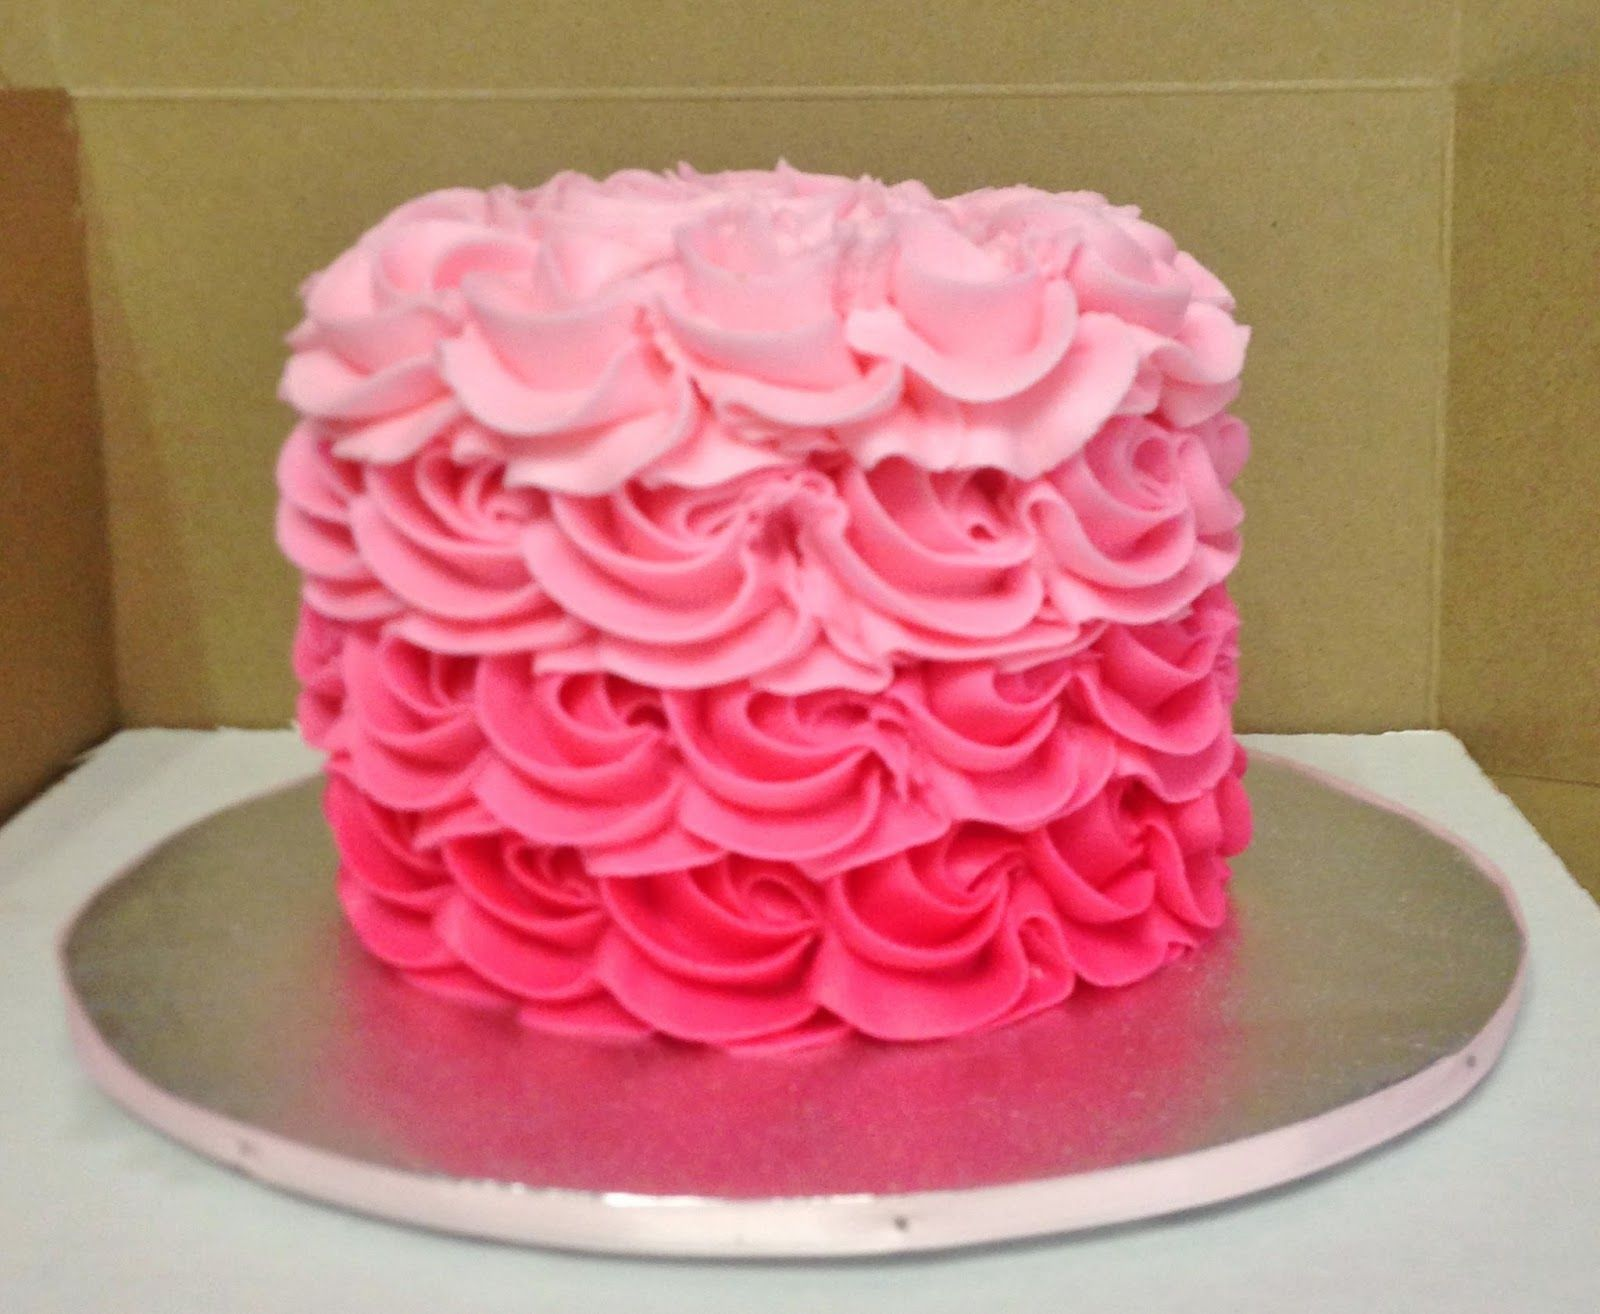 Cakes By Mindy 4 Pink Ombre Rosette Cake